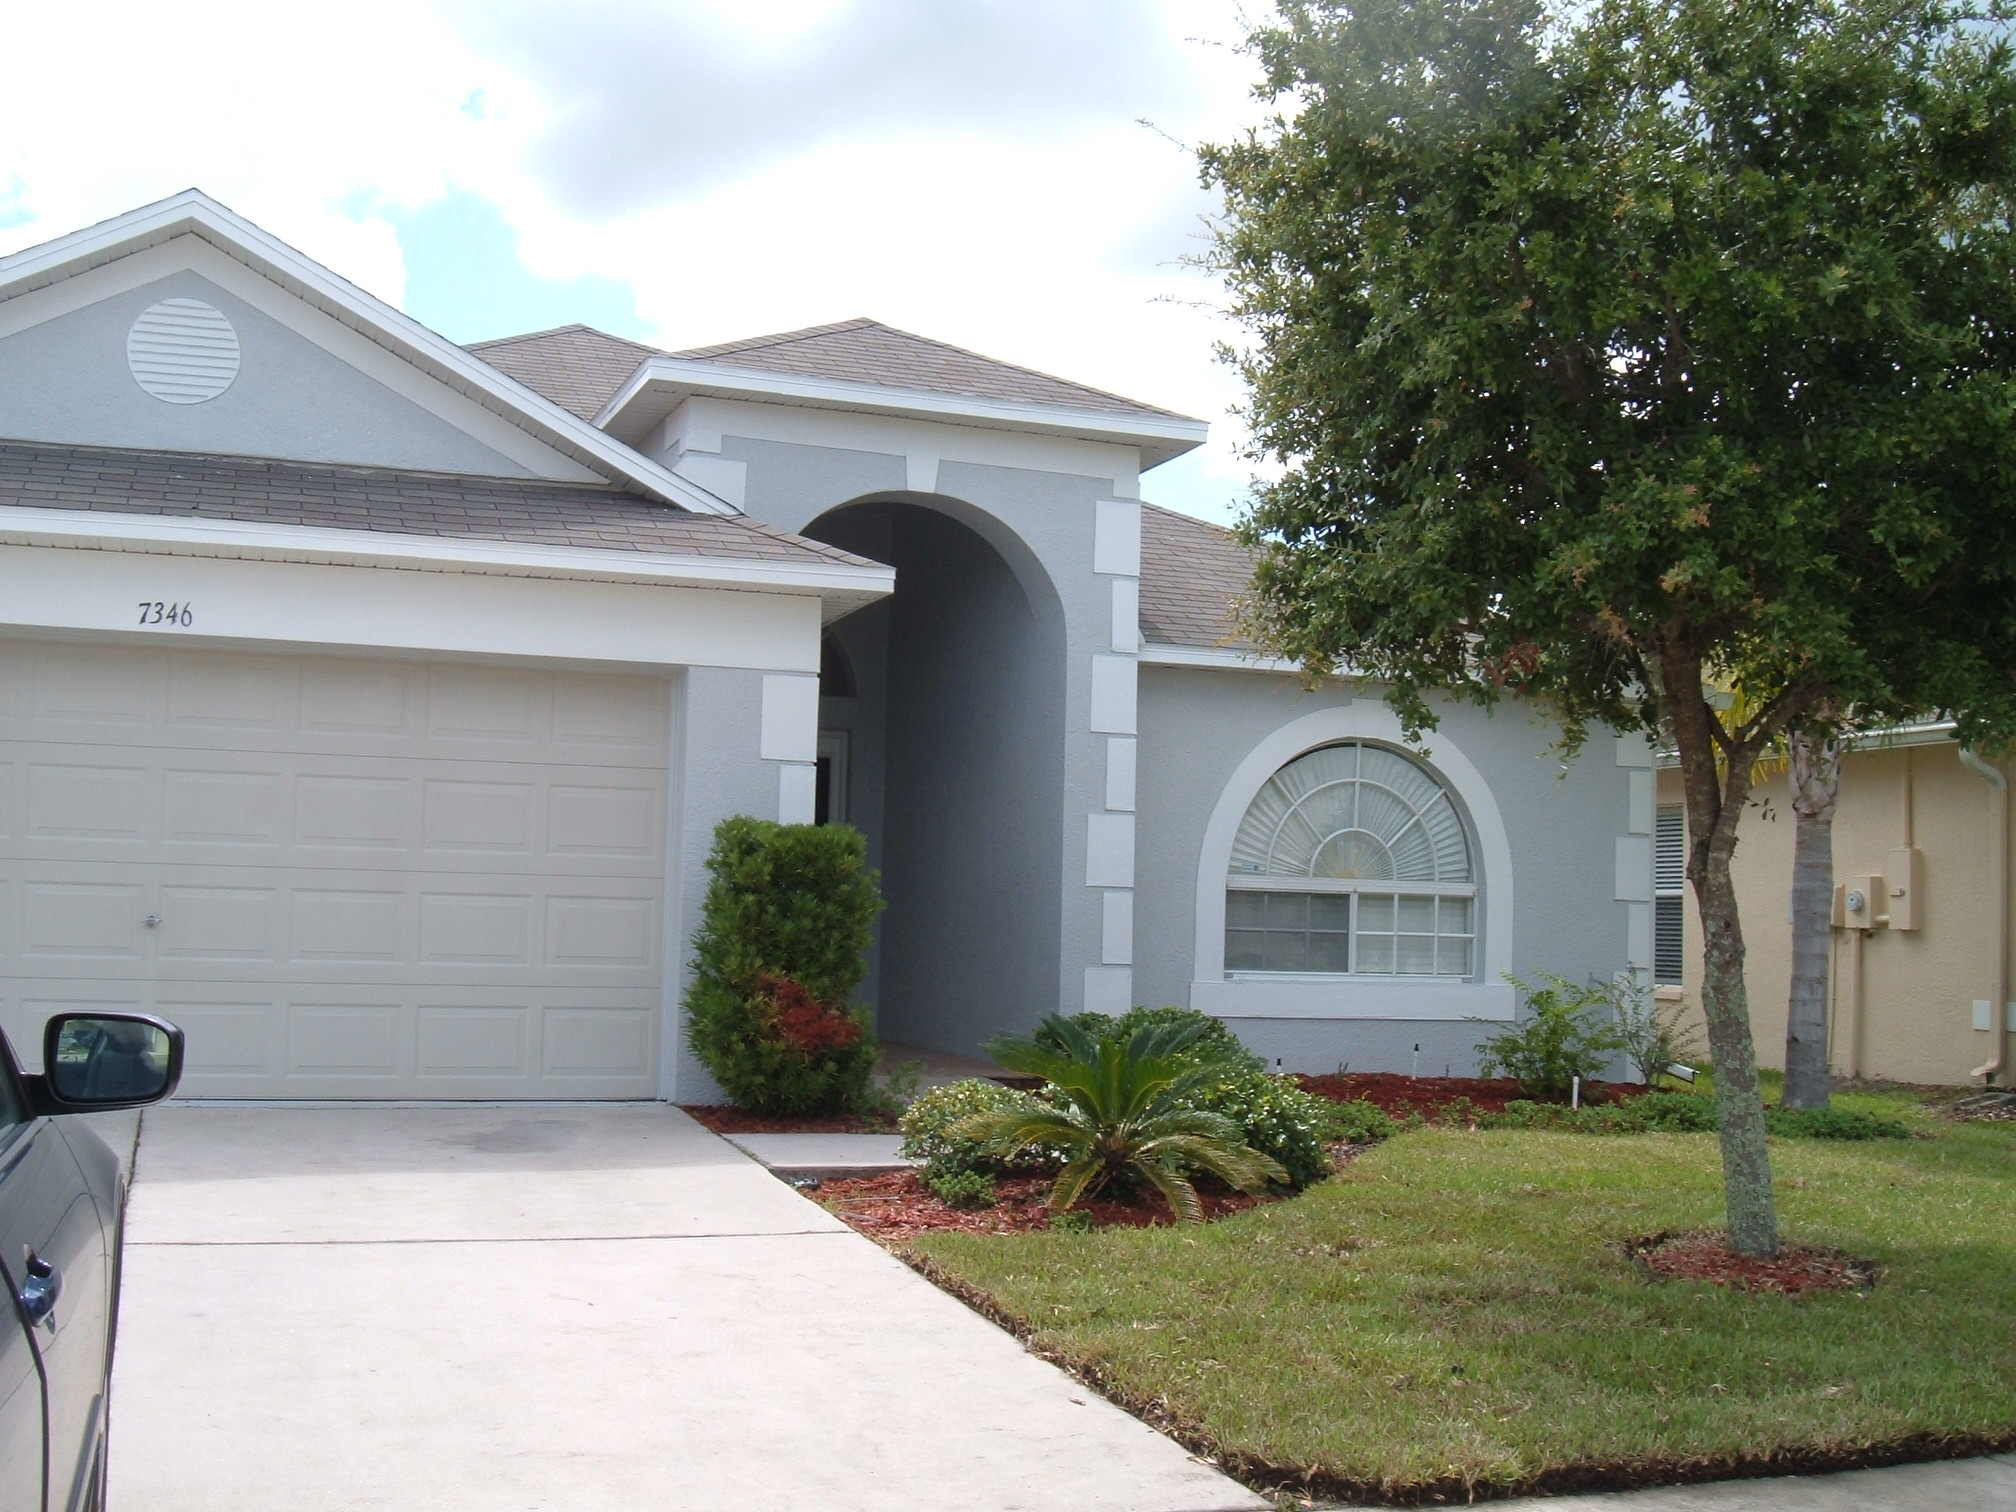 wesley chapel christian singles 533 3 bed single family homes for sale in wesley chapel, fl browse photos, see new properties, get open house info, and research neighborhoods on trulia.